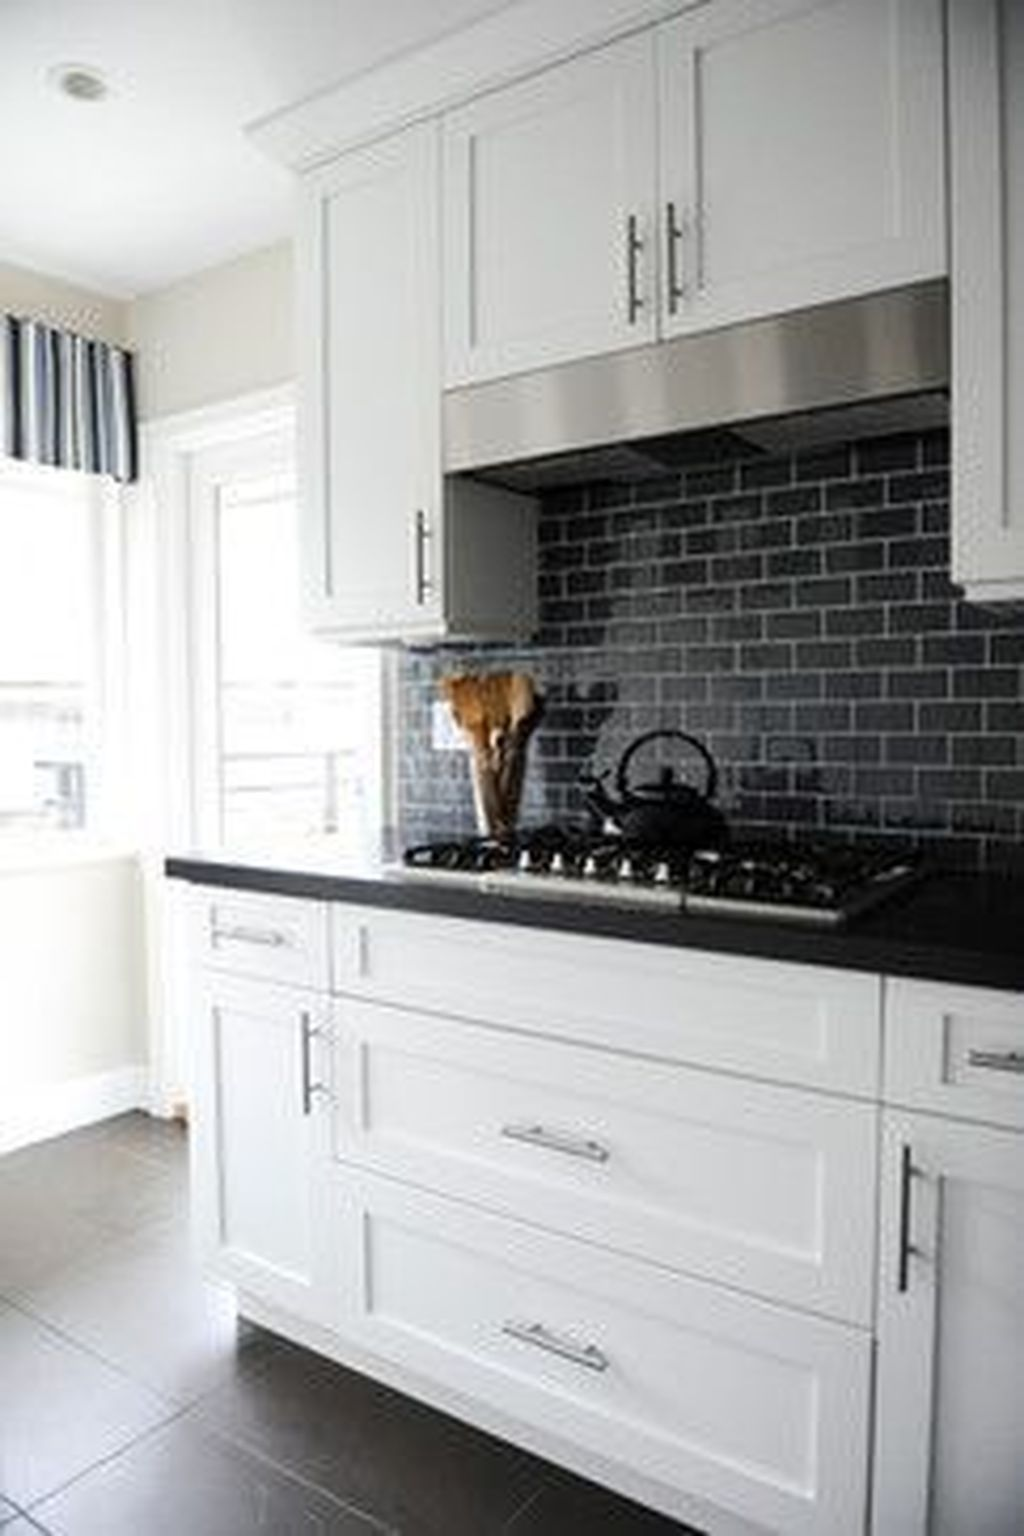 34 Elegant Black And White Kitchen Cabinets Design Ideas To Copy